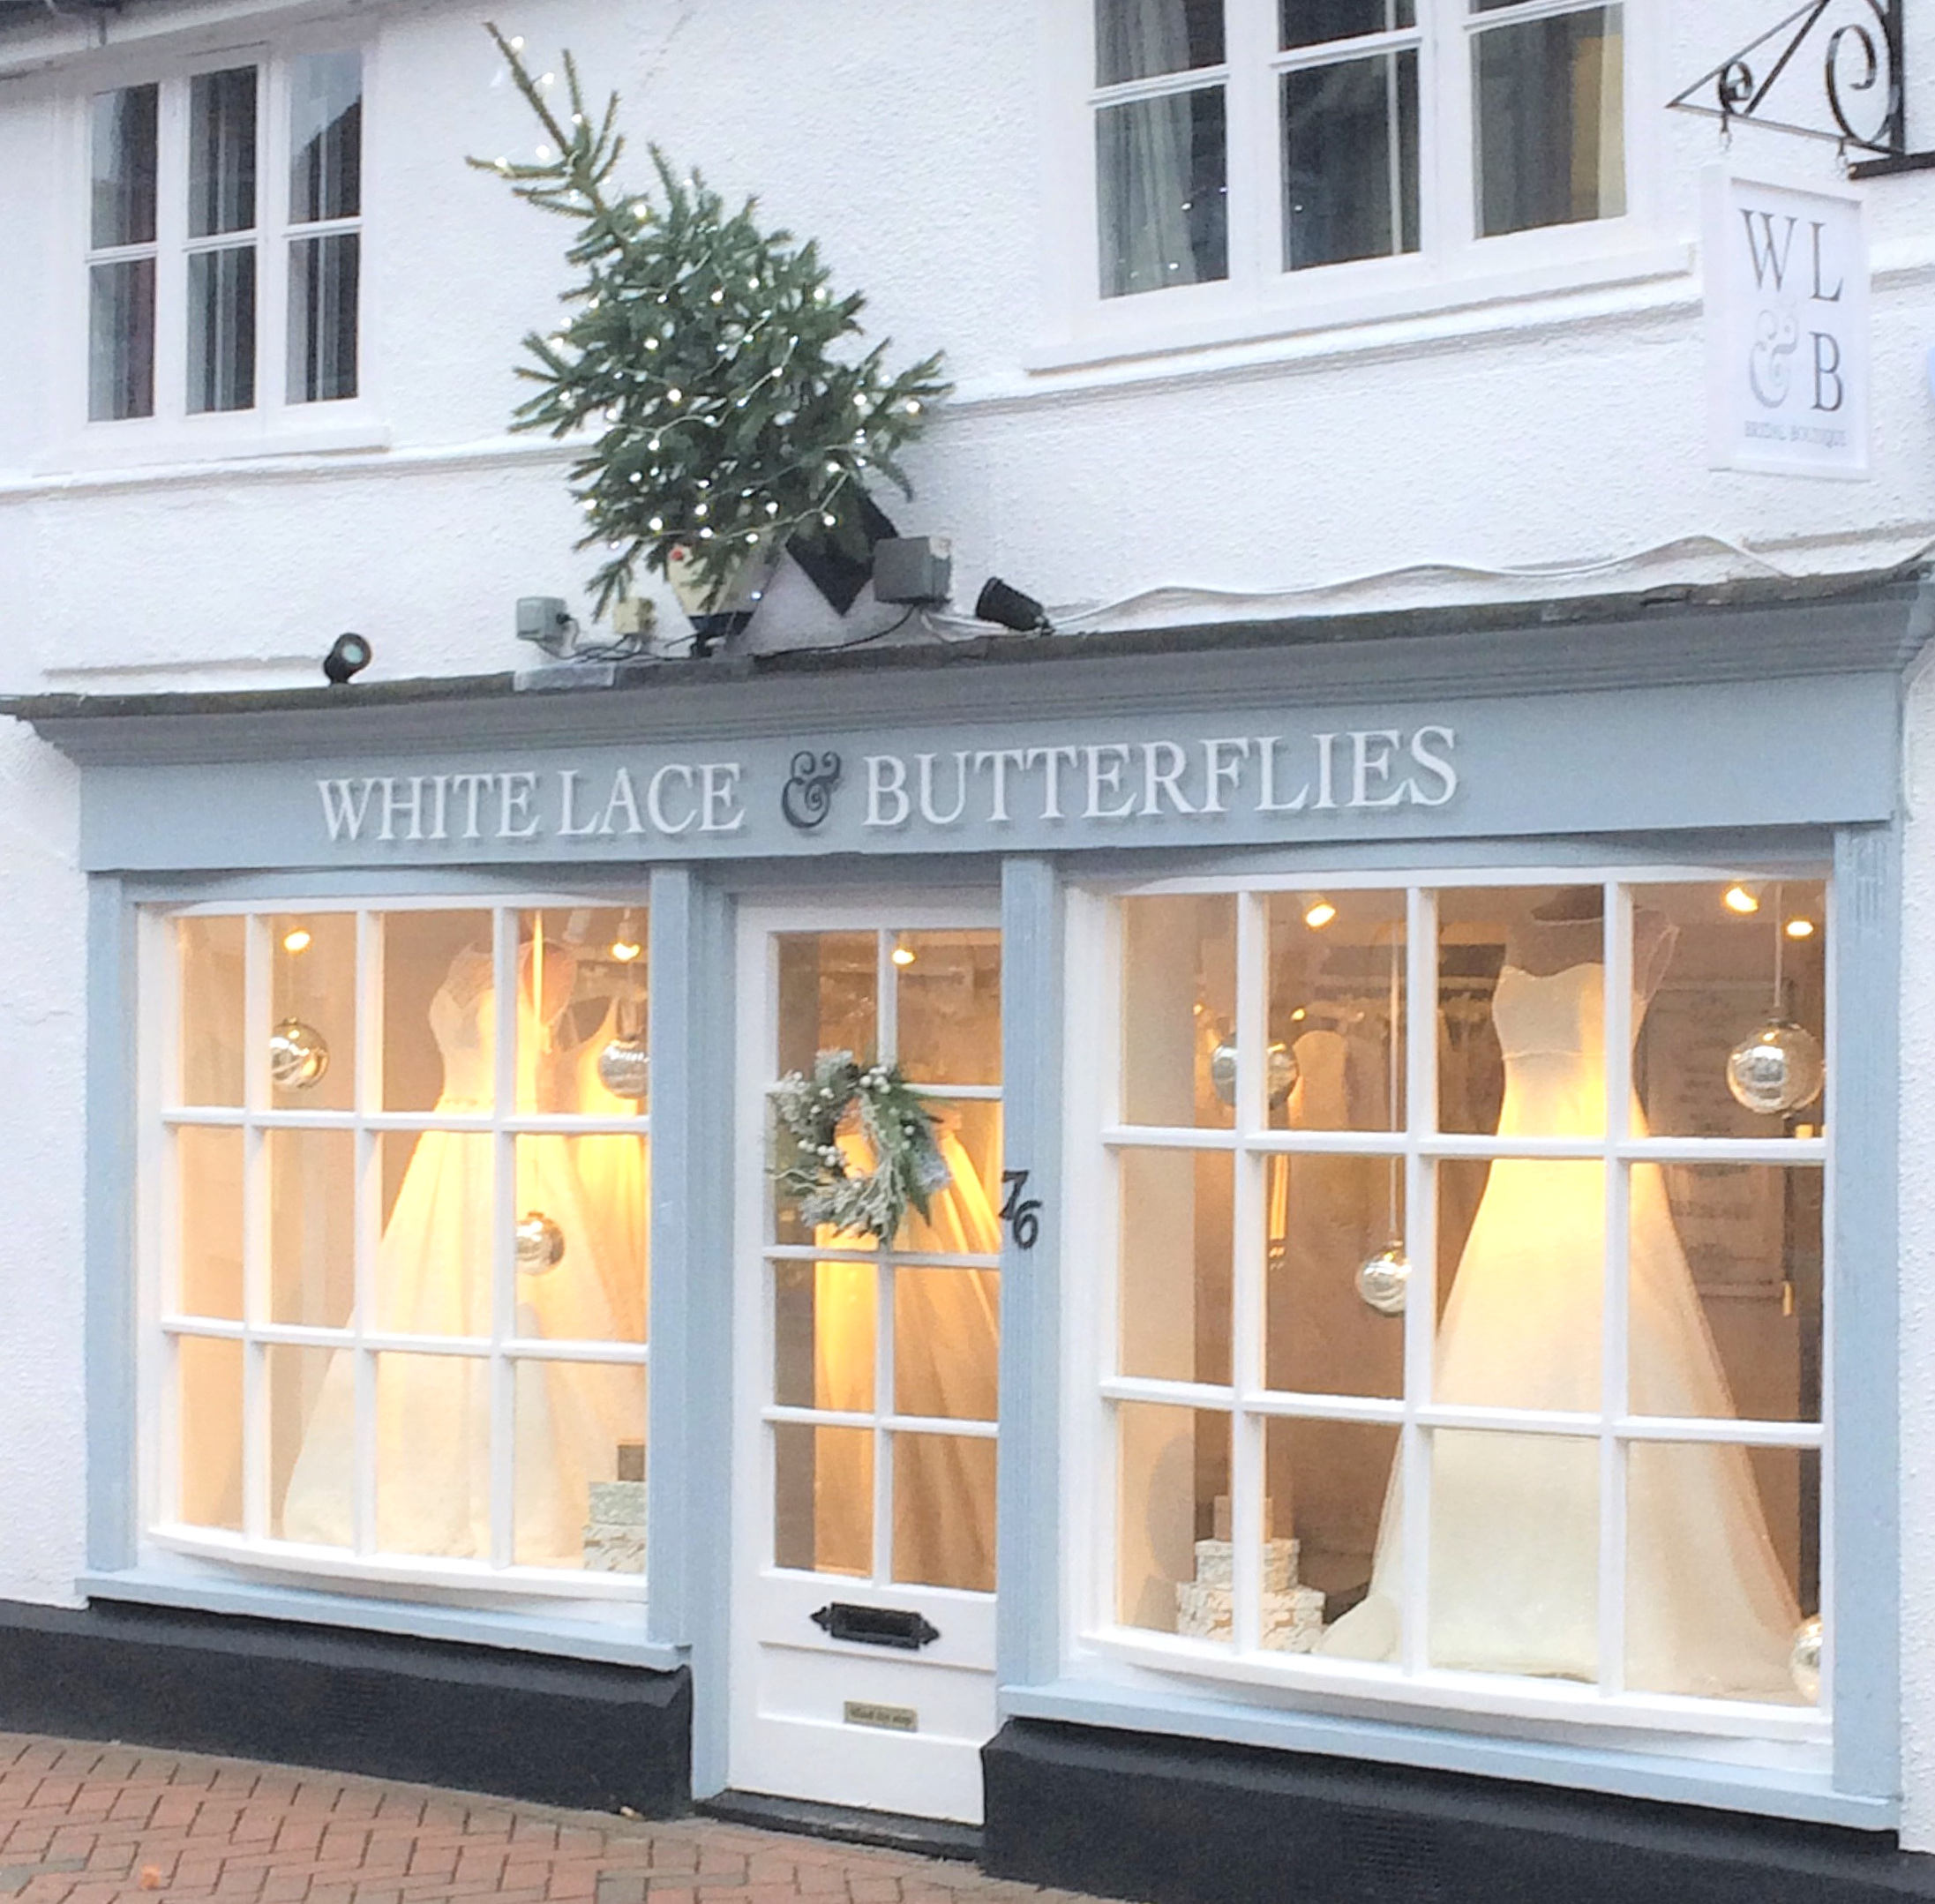 Bridal Shop, Bridal Boutique, Wedding dress, Wedding gown, Buckinghamshire, Great Missenden, Amersham, Beaconsfield, Wendover, Hedsor House, Missenden Abbey, Hampden House, Kings Chapel, Tudor Barn, Stoke Place, Notley Abbey, Notley Tythe Barn, The Dairy, Waddeston, Old Luxters Barn, Wedding Dress Shop